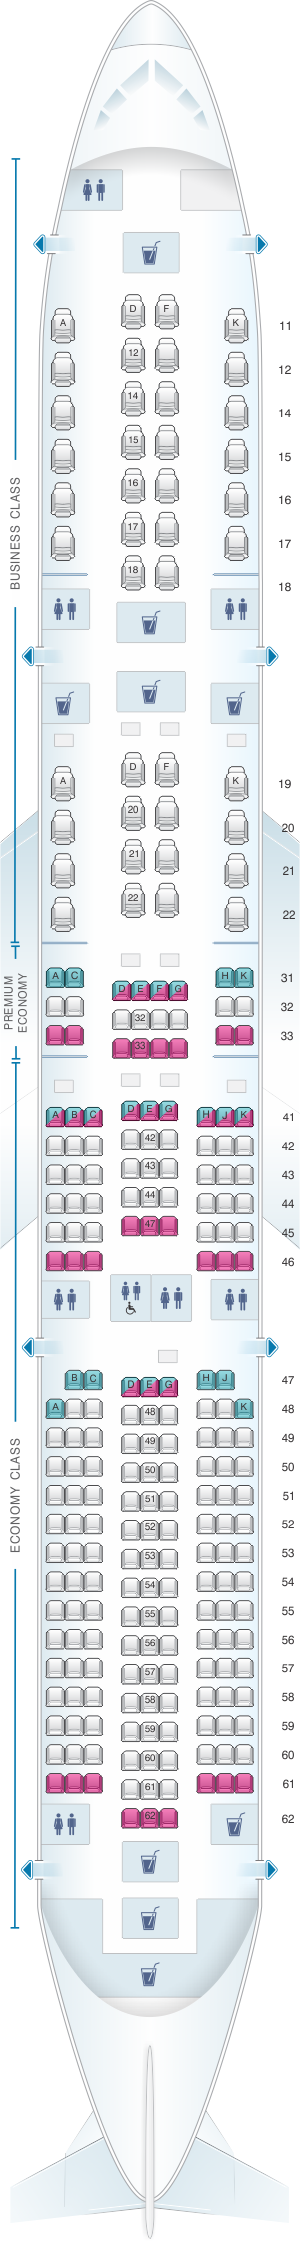 Seat Map Singapore Airlines Airbus A350 900 | Singapore Airlines ...